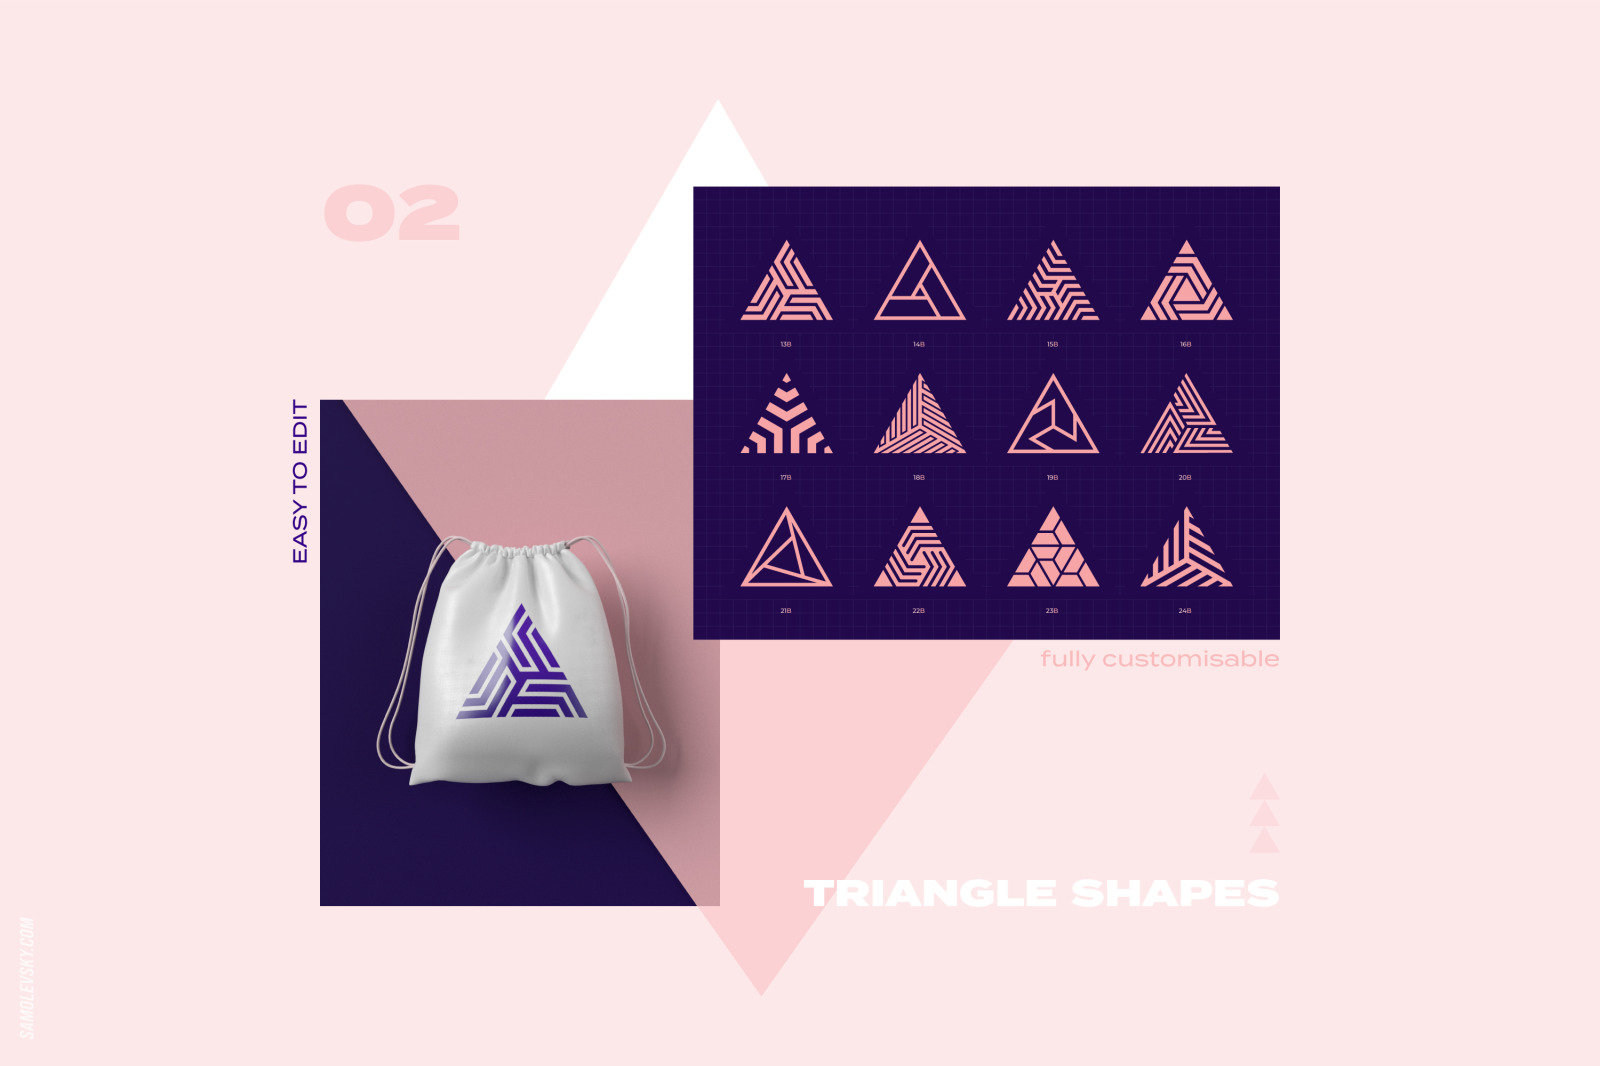 96 Geometric shapes & logo marks collection Vol.1